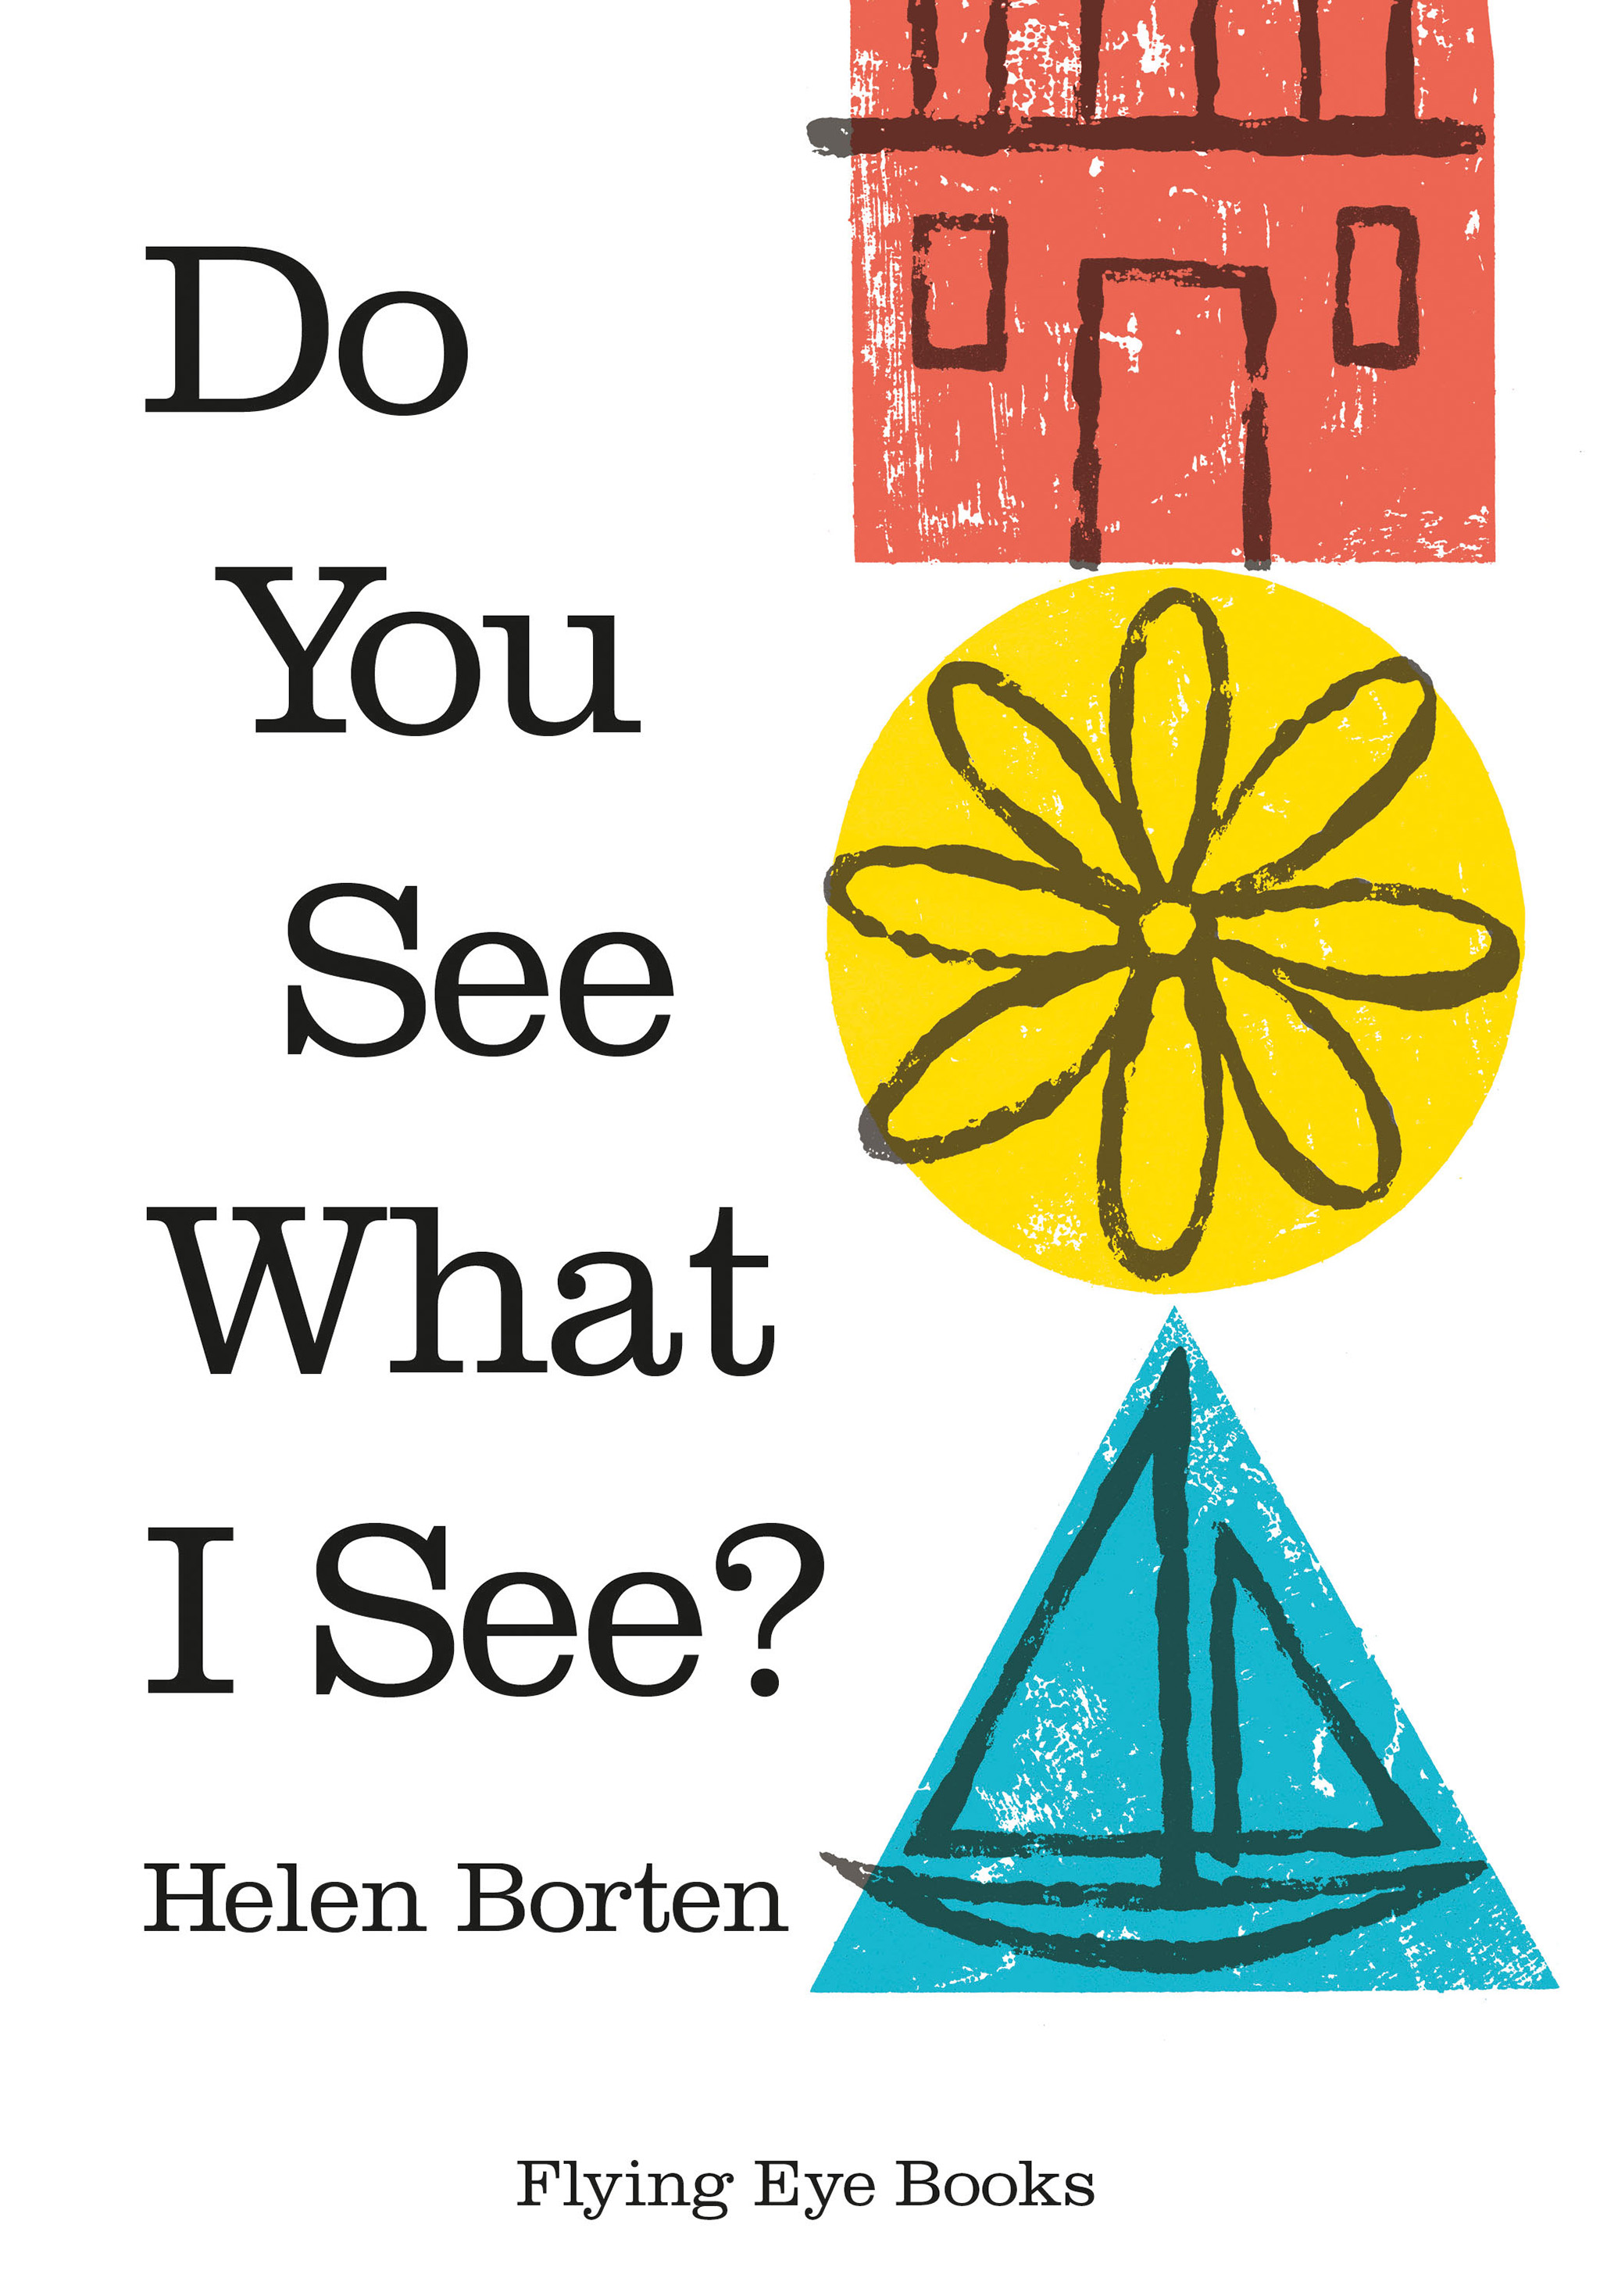 Do You See What I See? A Poetic Vintage Art-Science Primer on the Building Blocks of the Perceptual World